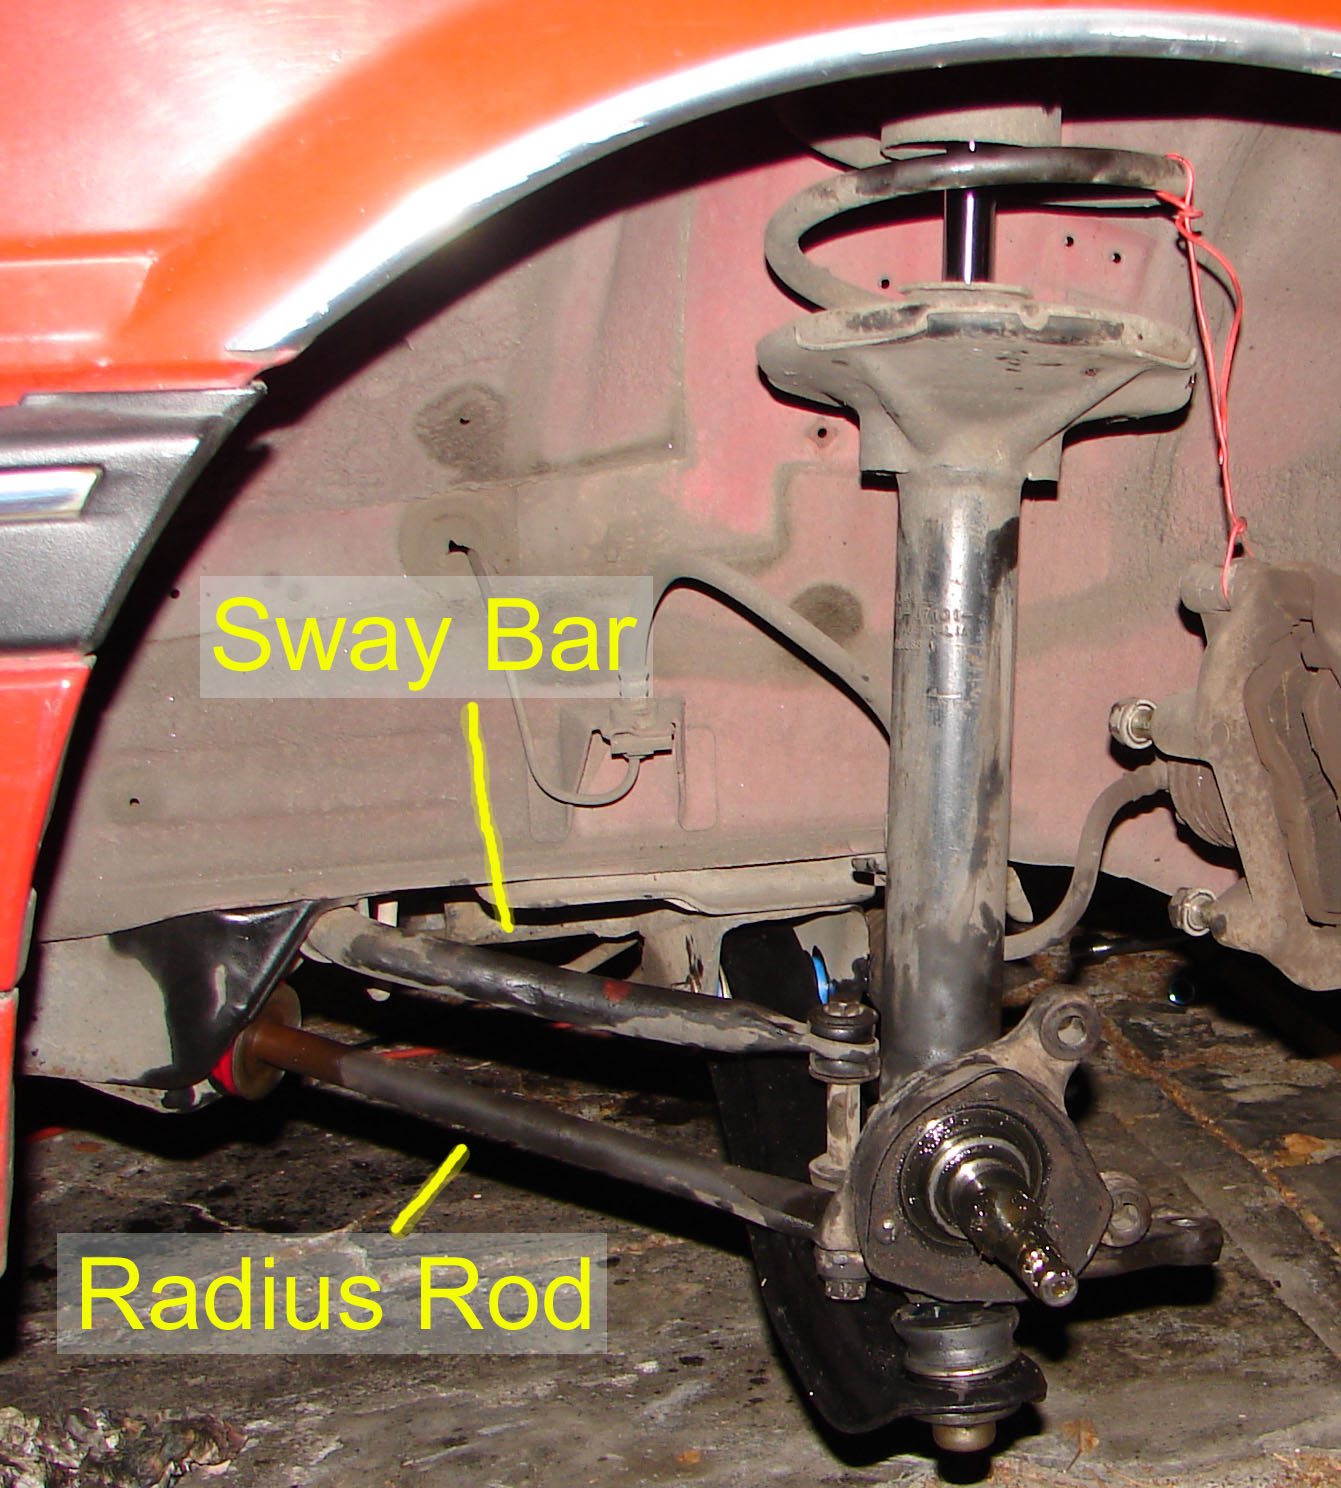 File:Radius rod sway bar jpg - Wikimedia Commons